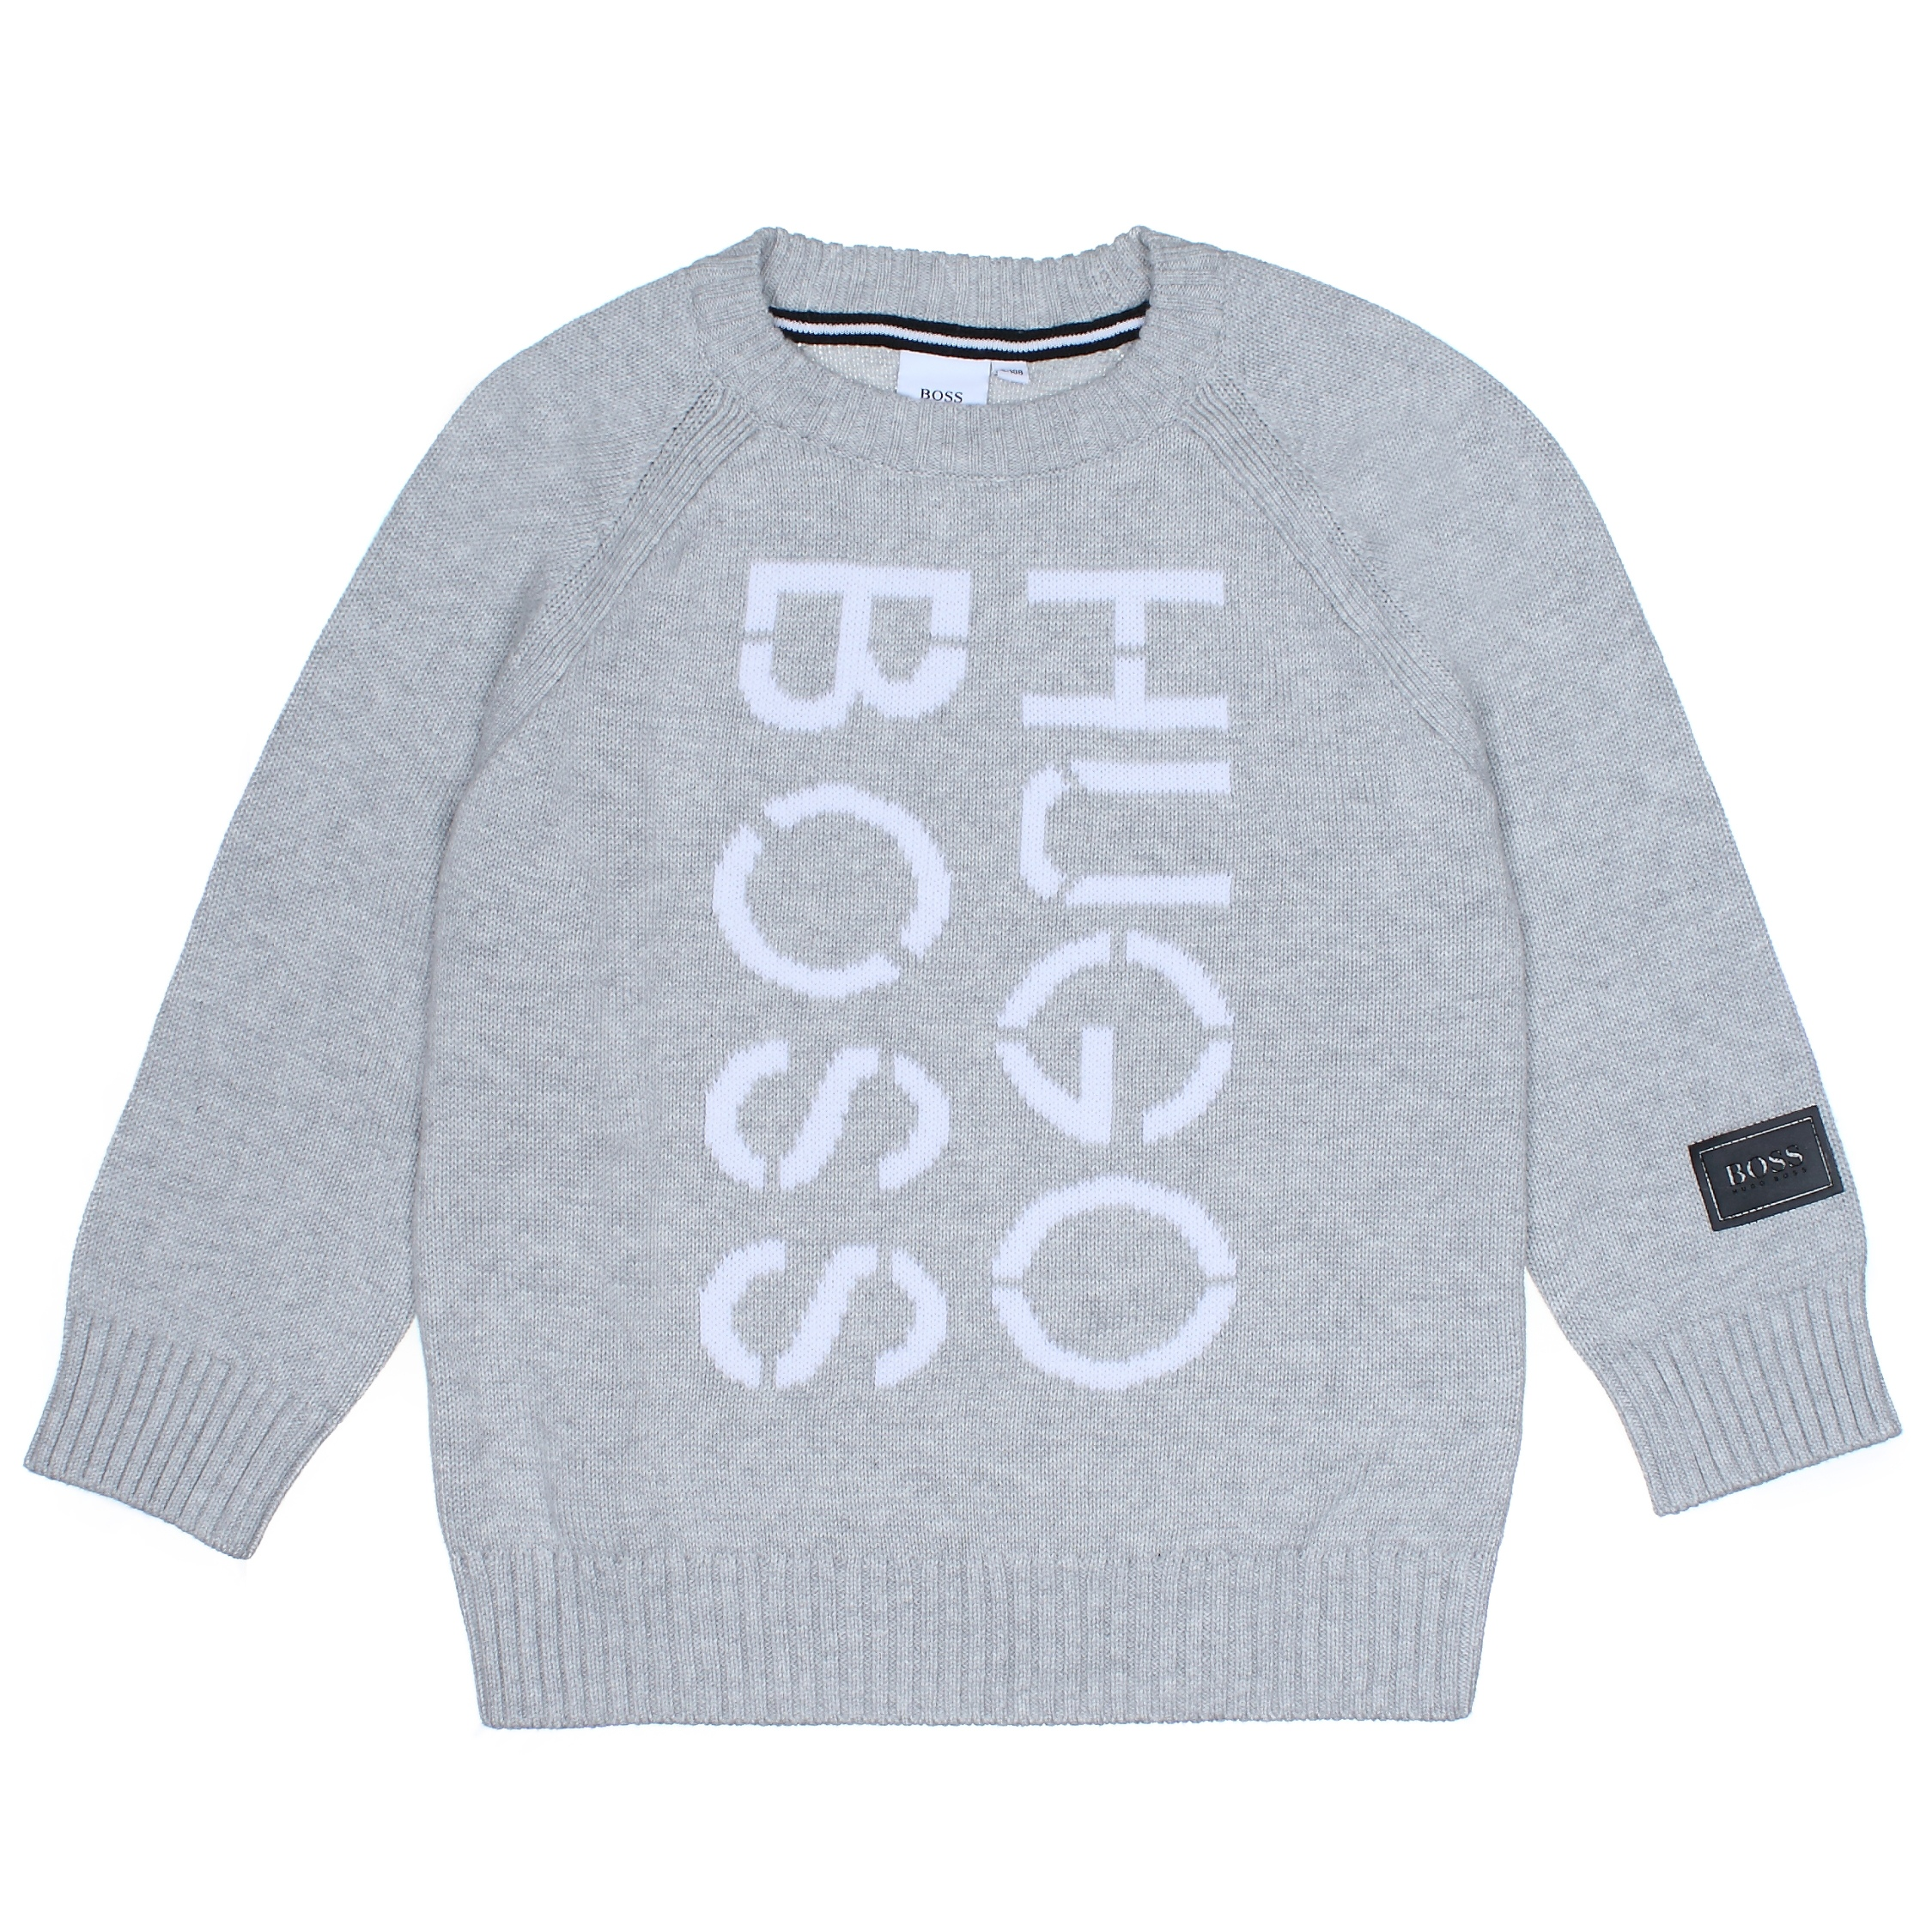 http://www.leadermode.com/184347/hugo-boss-j25e10-a07-gris-clair-chine.jpg